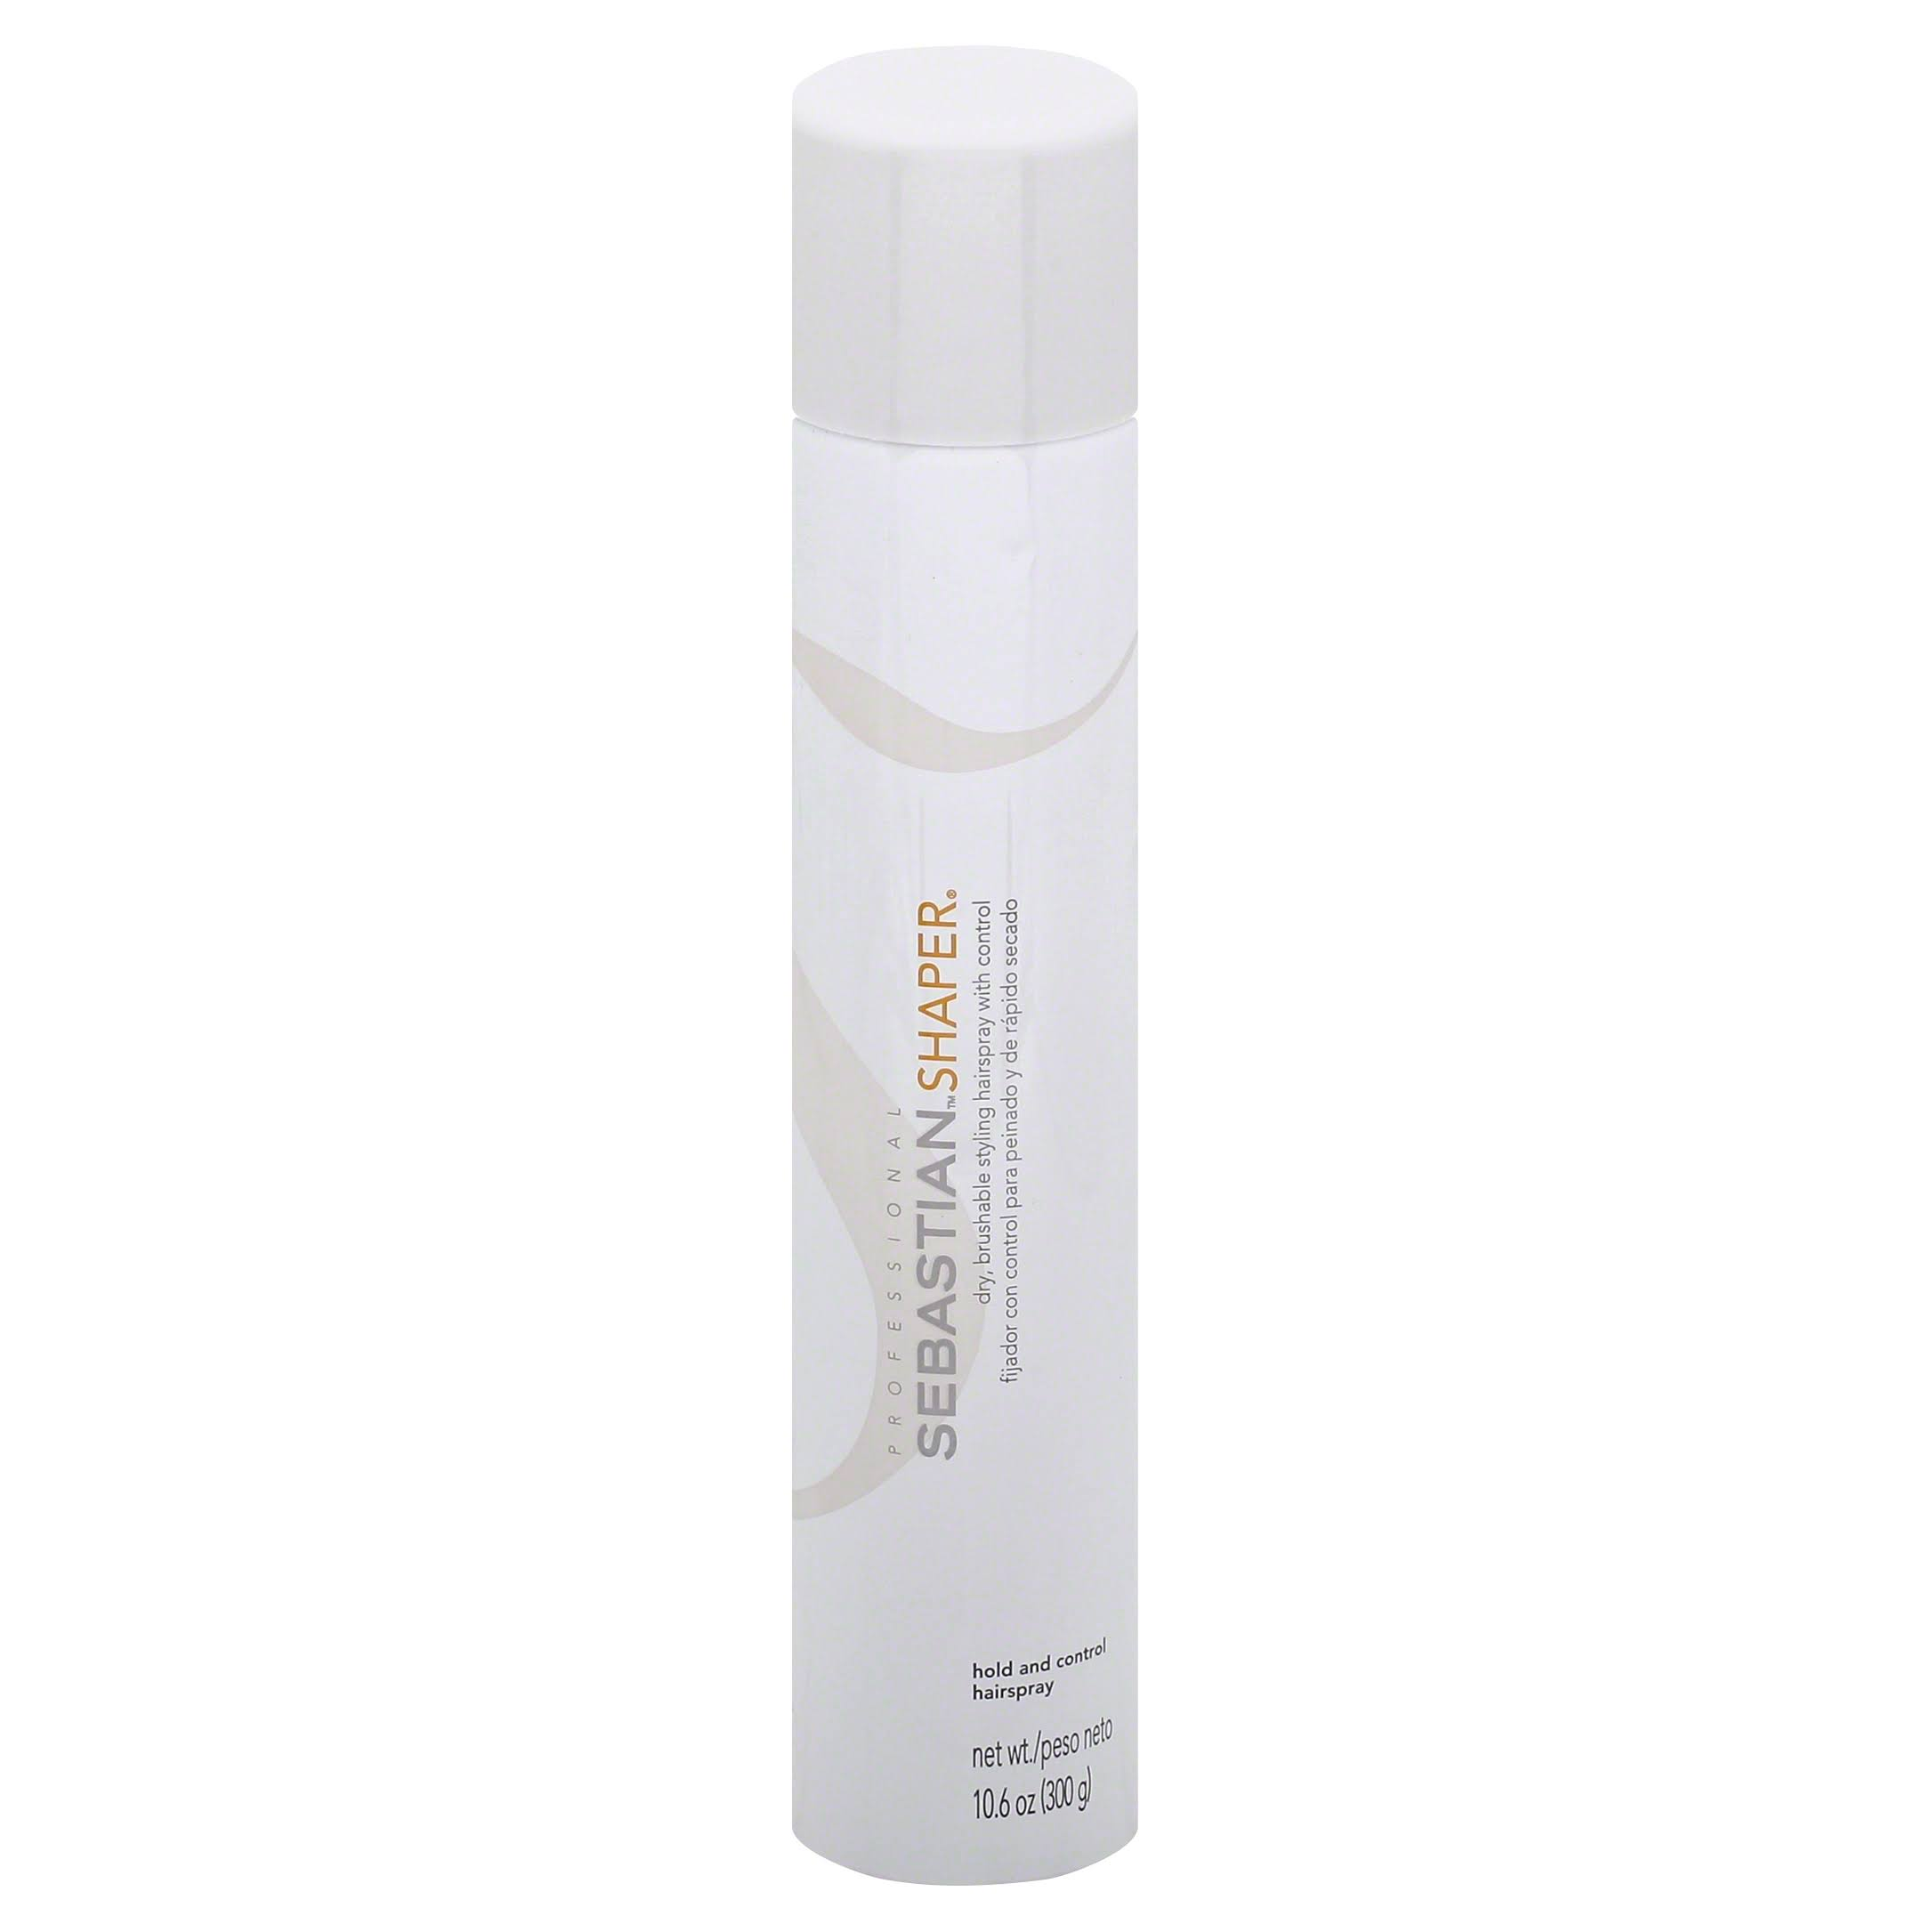 Sebastian Shaper Hairspray - Brushable Styling, 310ml